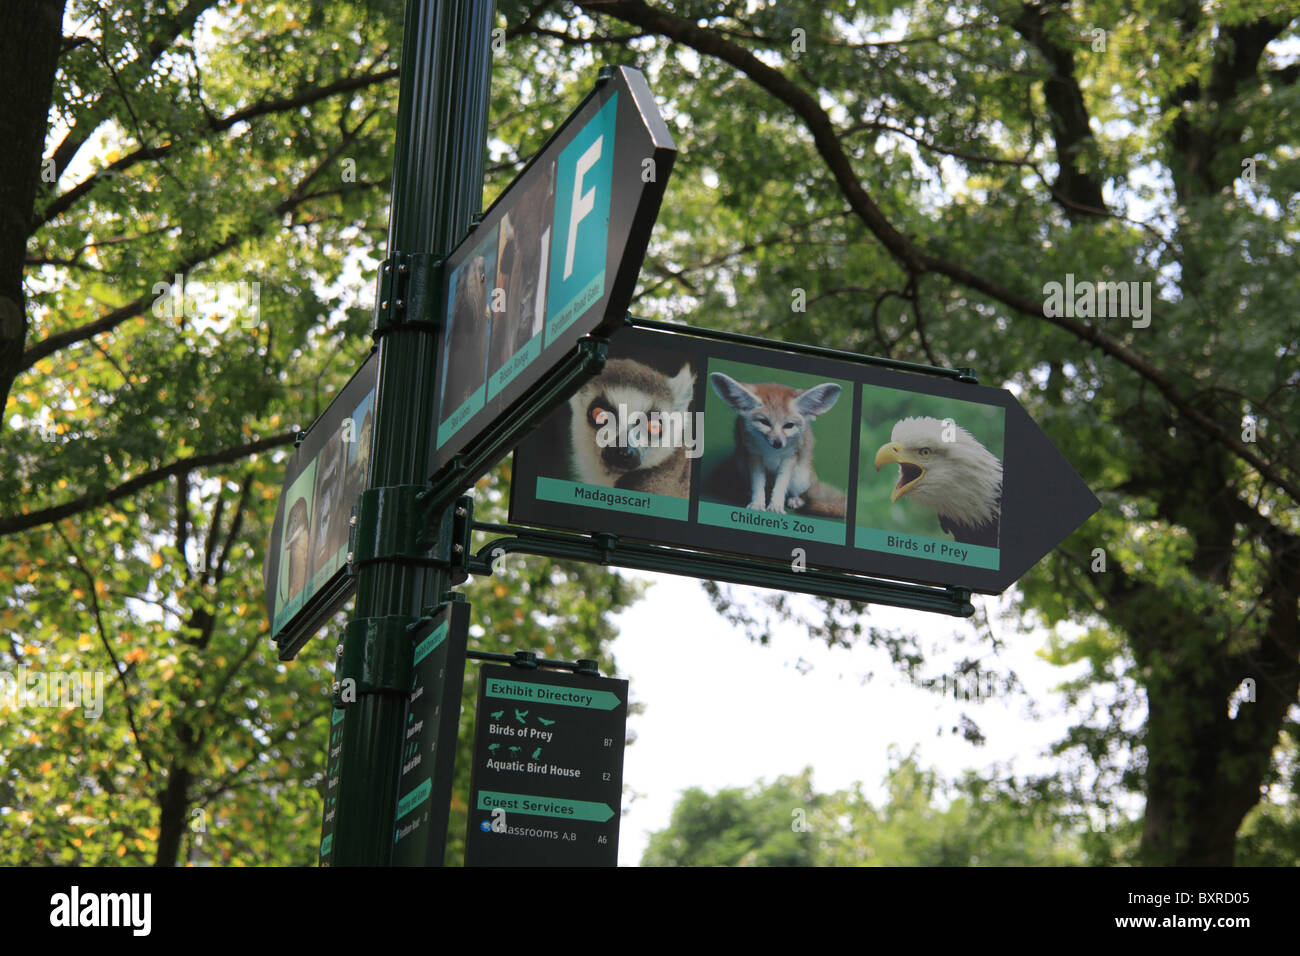 Directional Signs Guiding Visitors To Exhibits At The Bronx Zoo